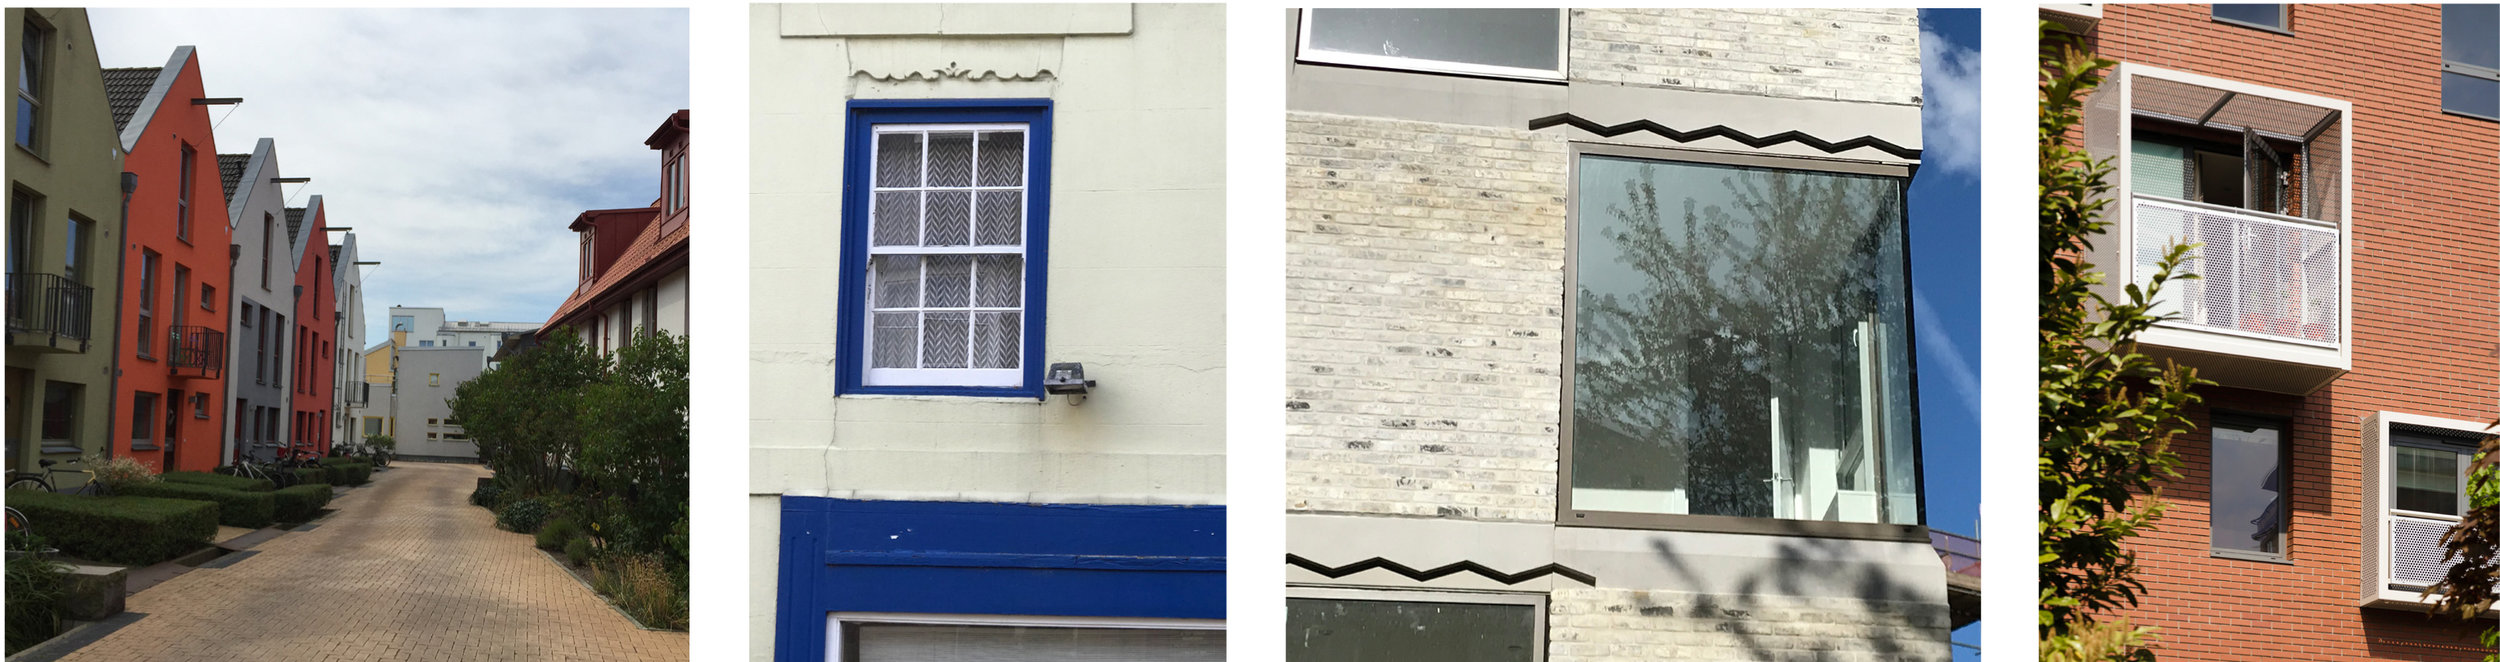 Specific and repeated architectural details could help to deliver a unique character to the architecture of the Fleet / Hythe